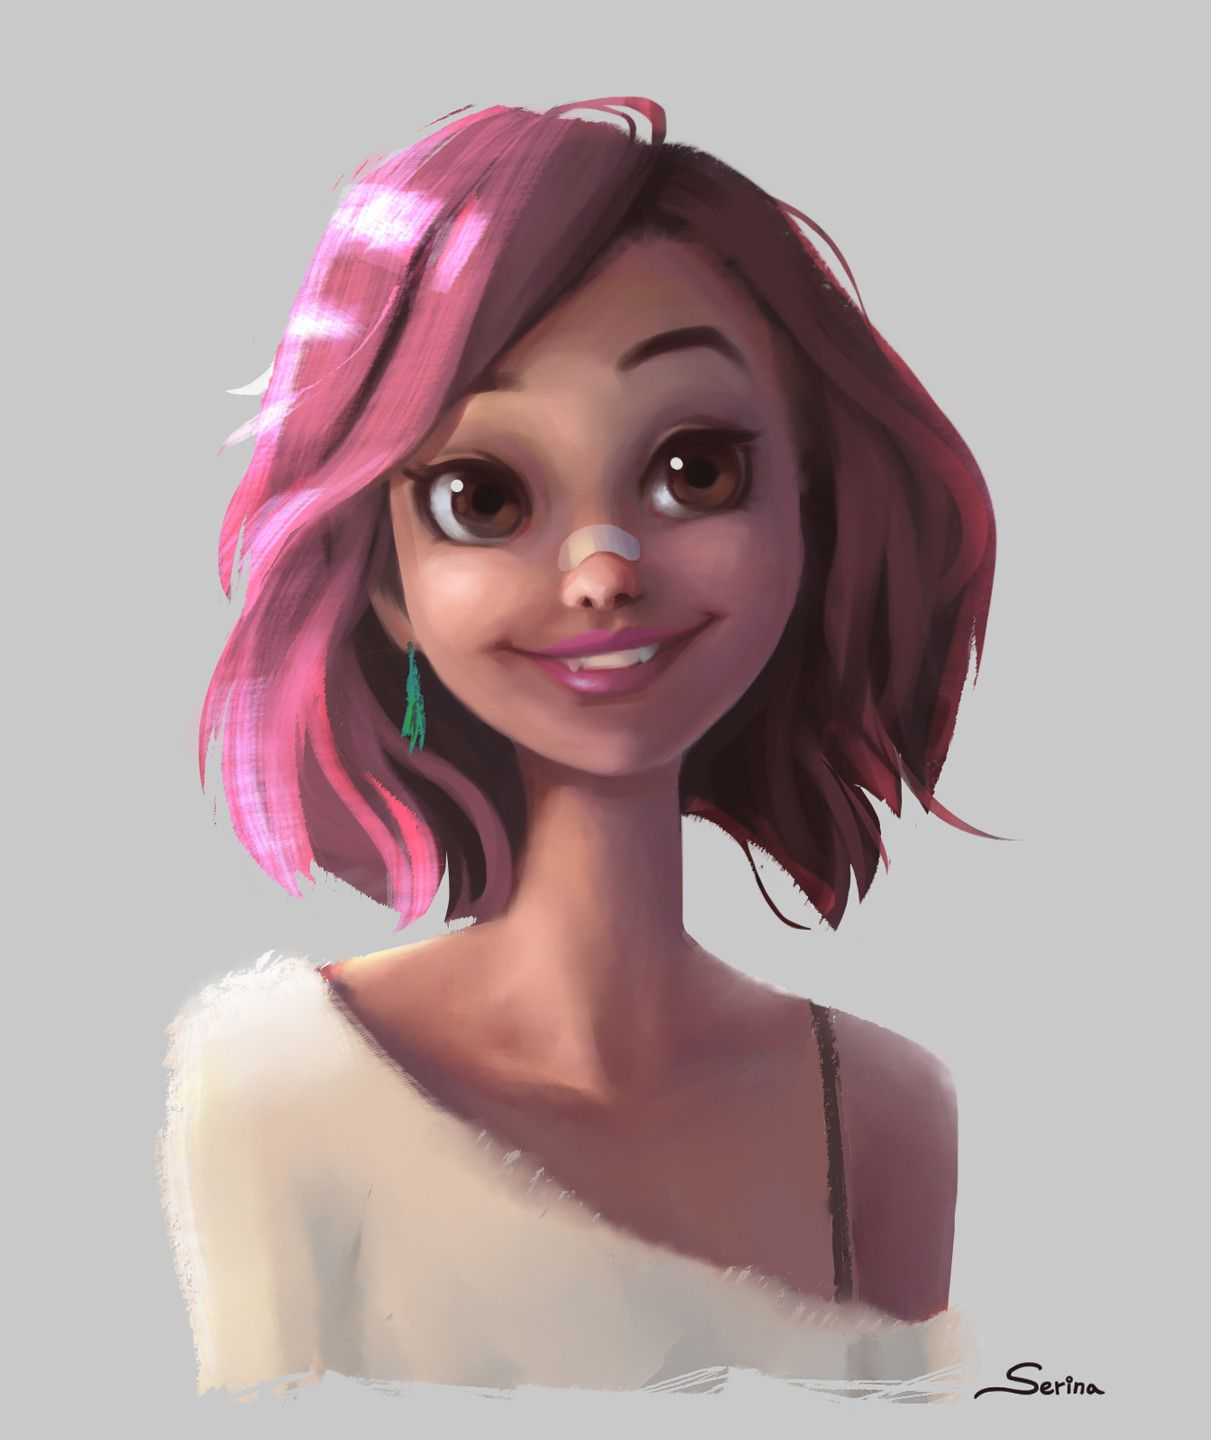 Pink Hair Lovely Lady Serina Mo Character Design Inspiration Digital Art Girl Concept Art Characters